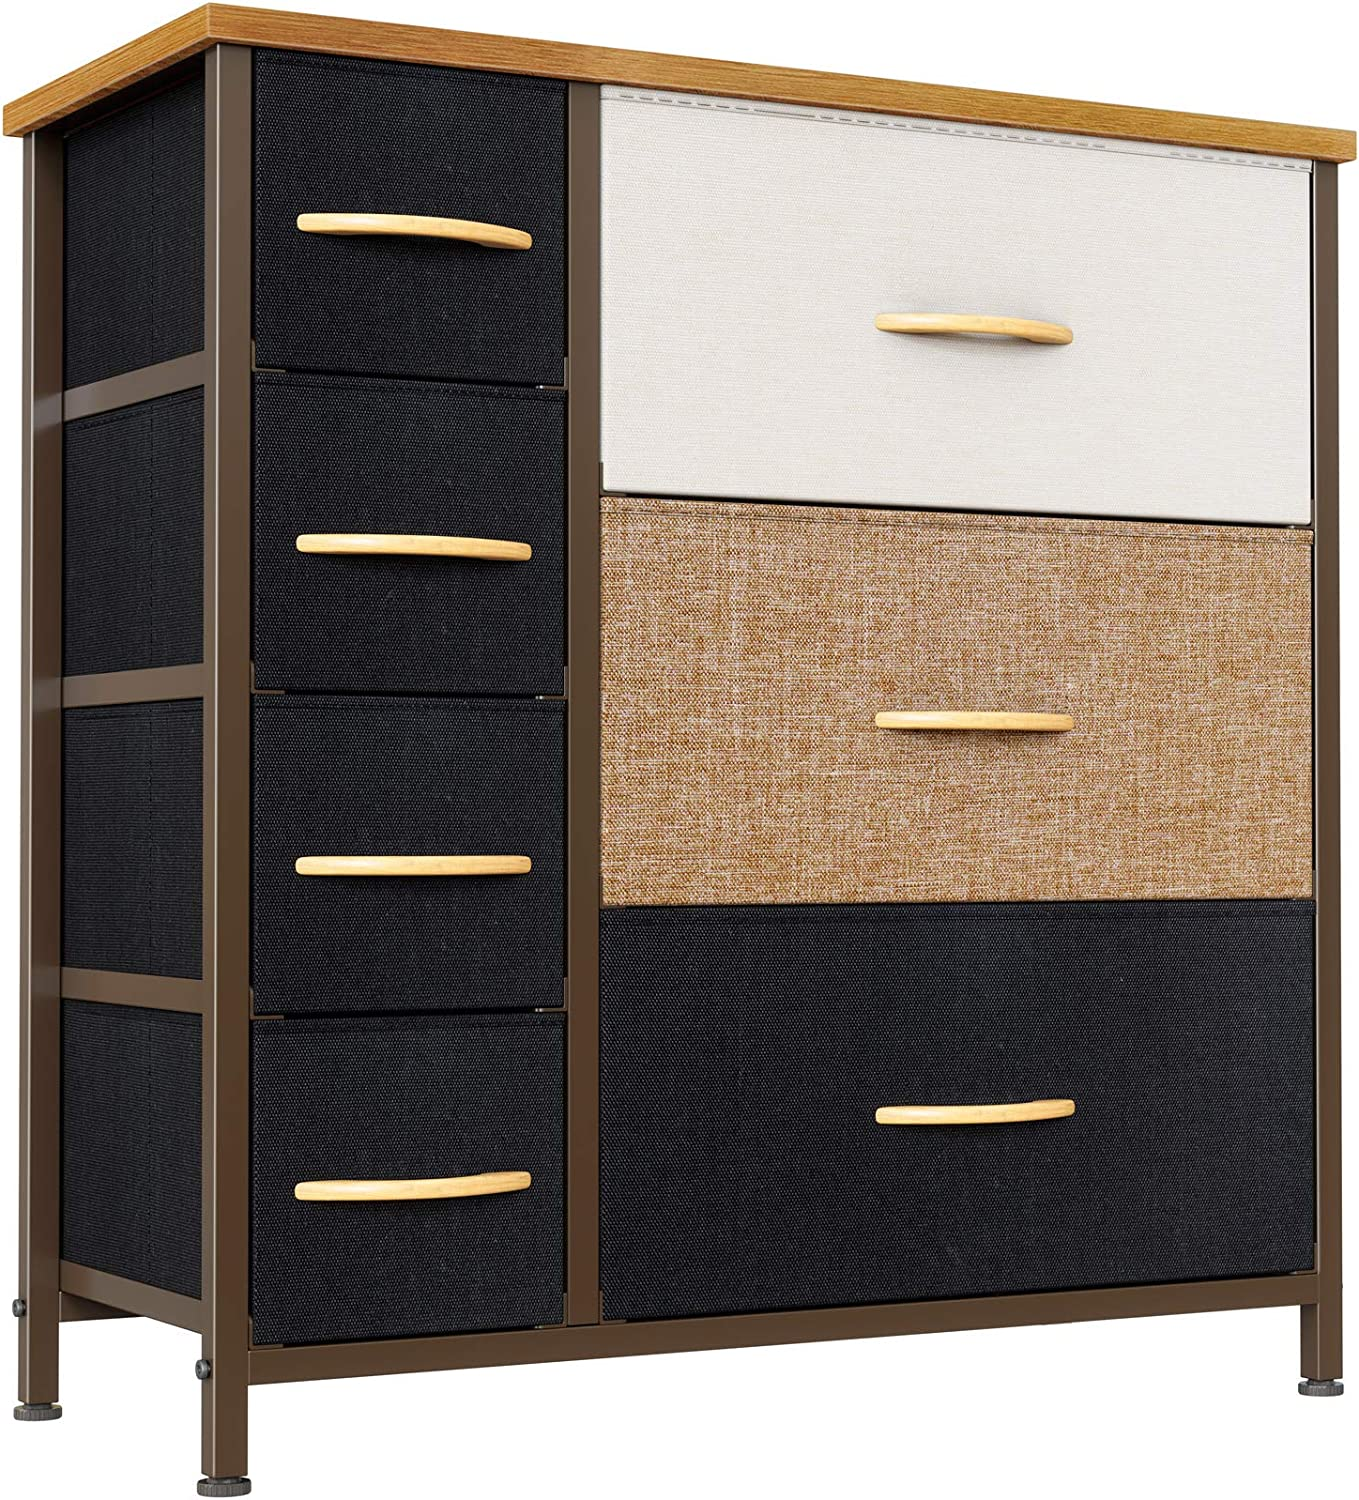 Cubiker Dresser Organizer with 7 Drawer, Furniture Storage Tower Unit for Bedroom Hallway Entryway Closets, Dresser Clothes Storage with Sturdy Steel Frame Wood Top, Chocolate